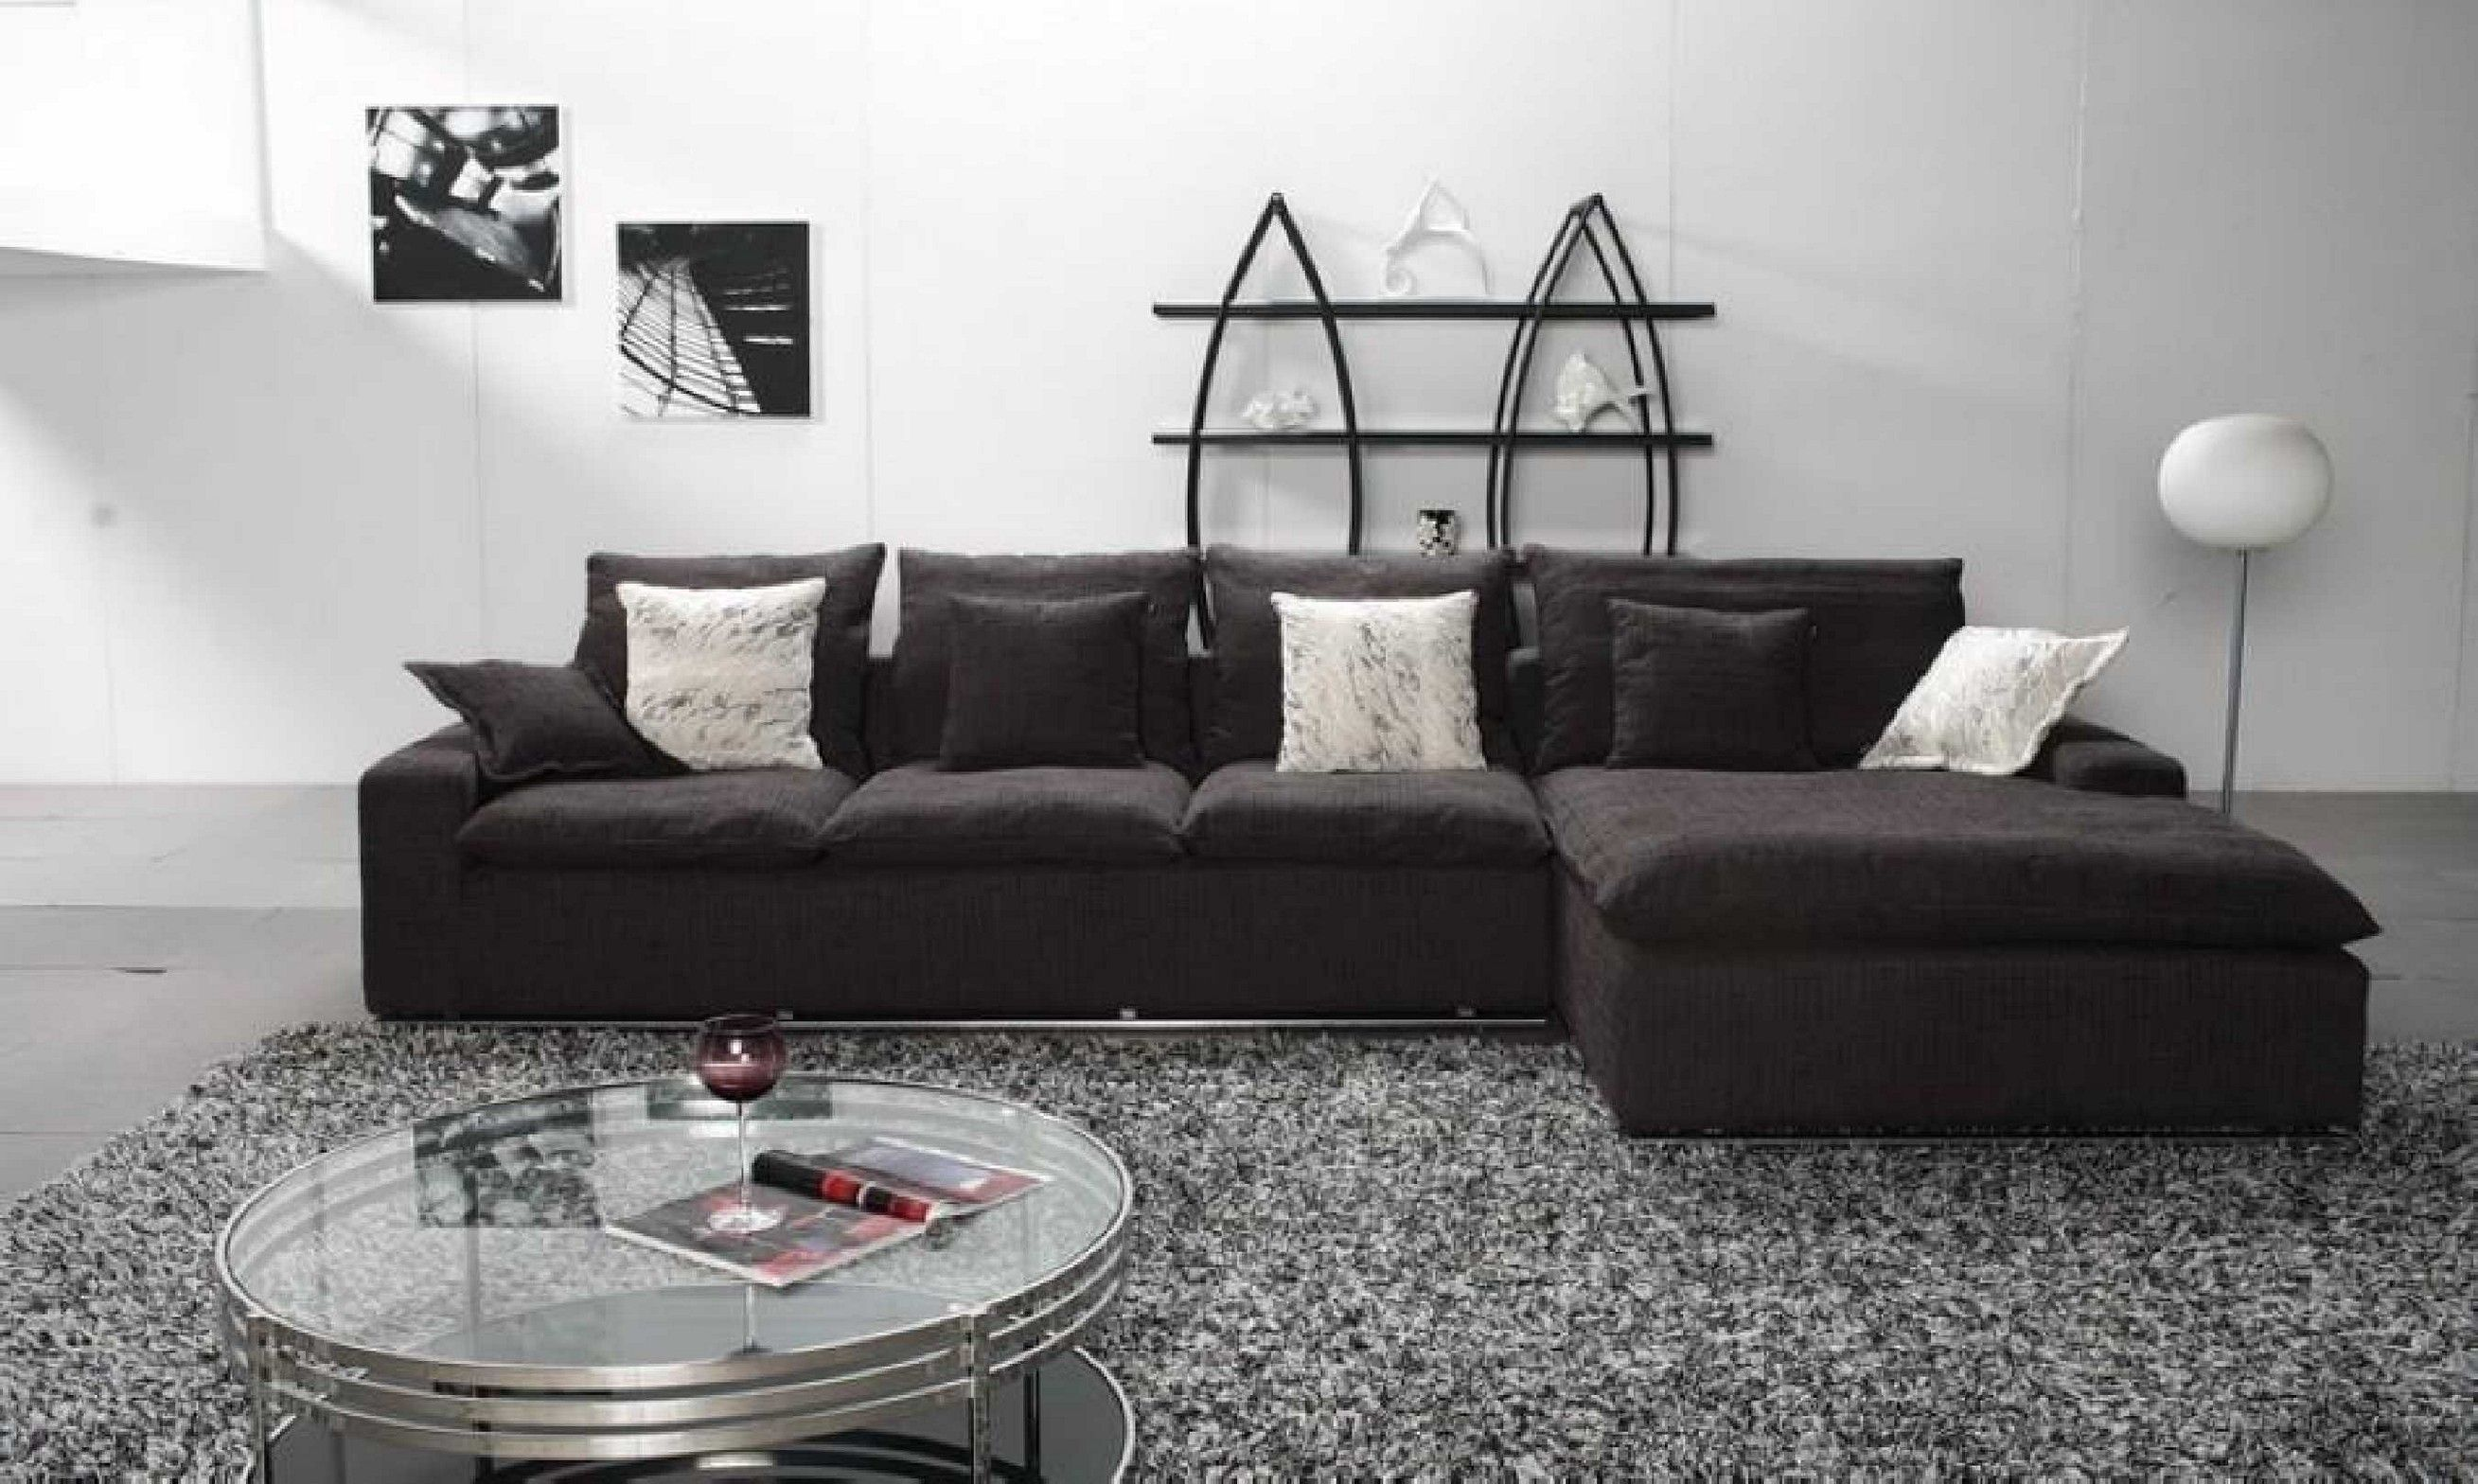 Most fortable L Shaped Couch Ever House ideas